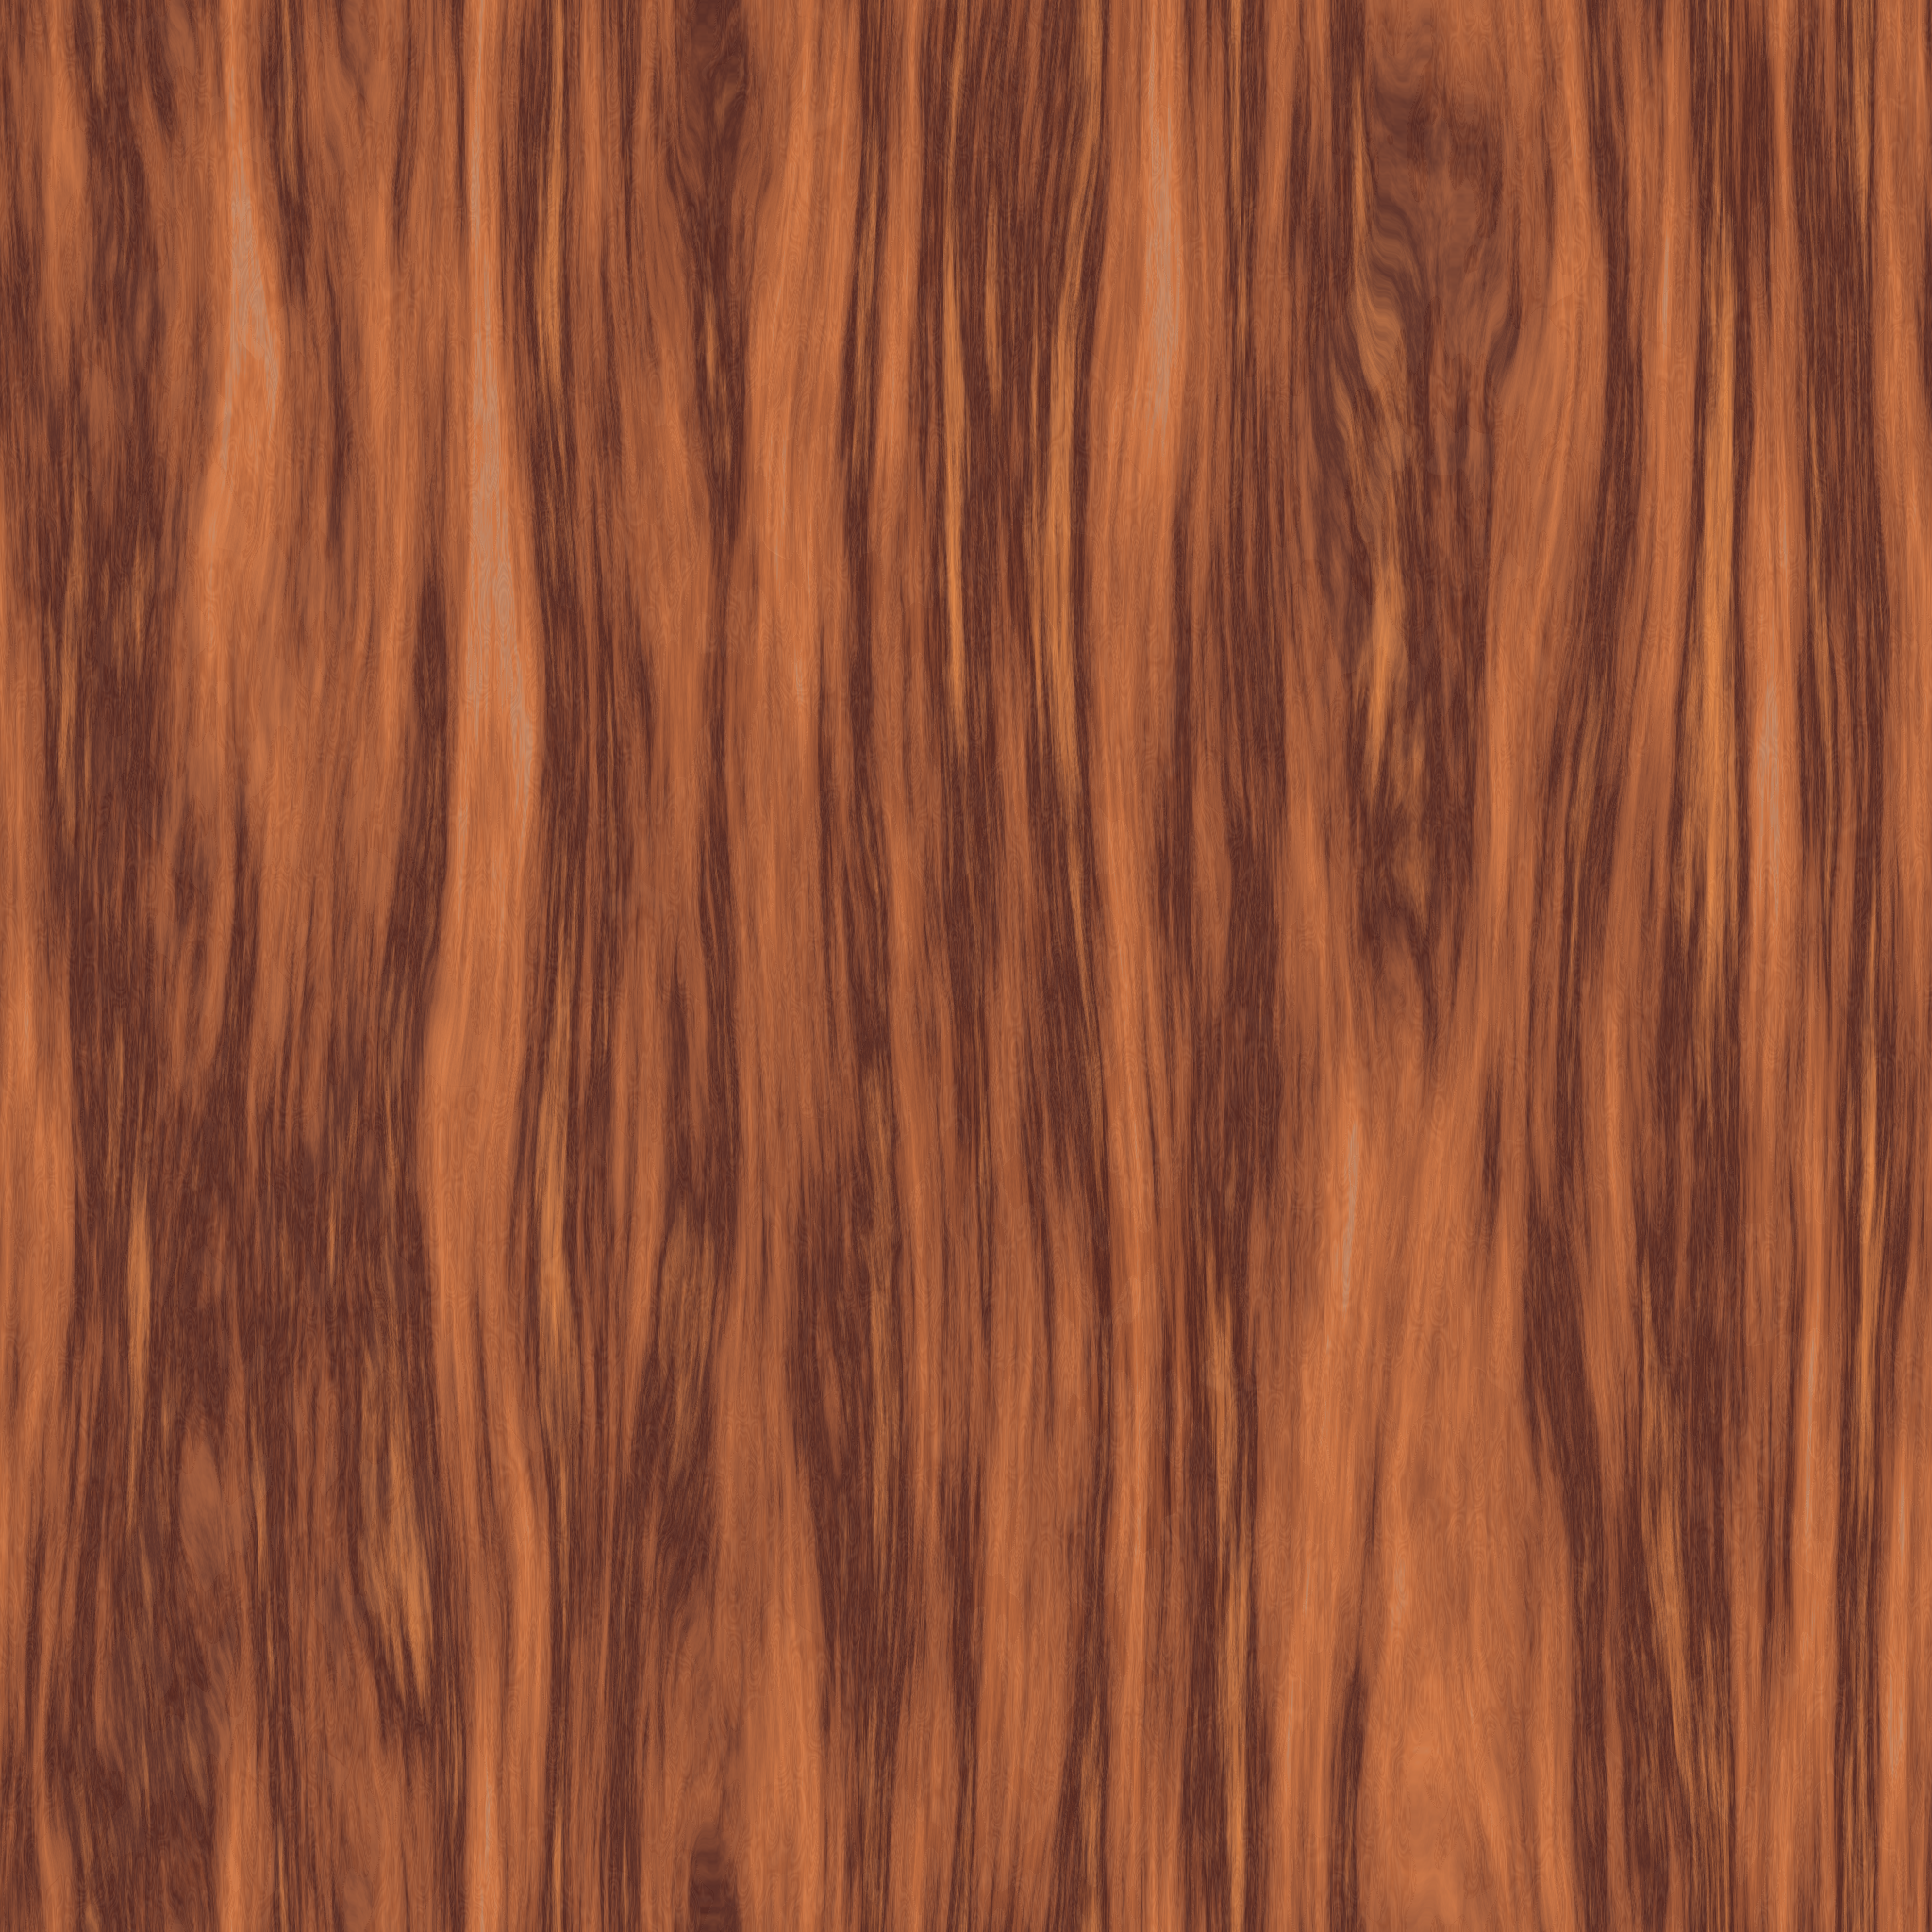 tileable wood texture. Zero CC Tileable Wood Texture, Made By Me Procedurally In Neo Texture Edit. R